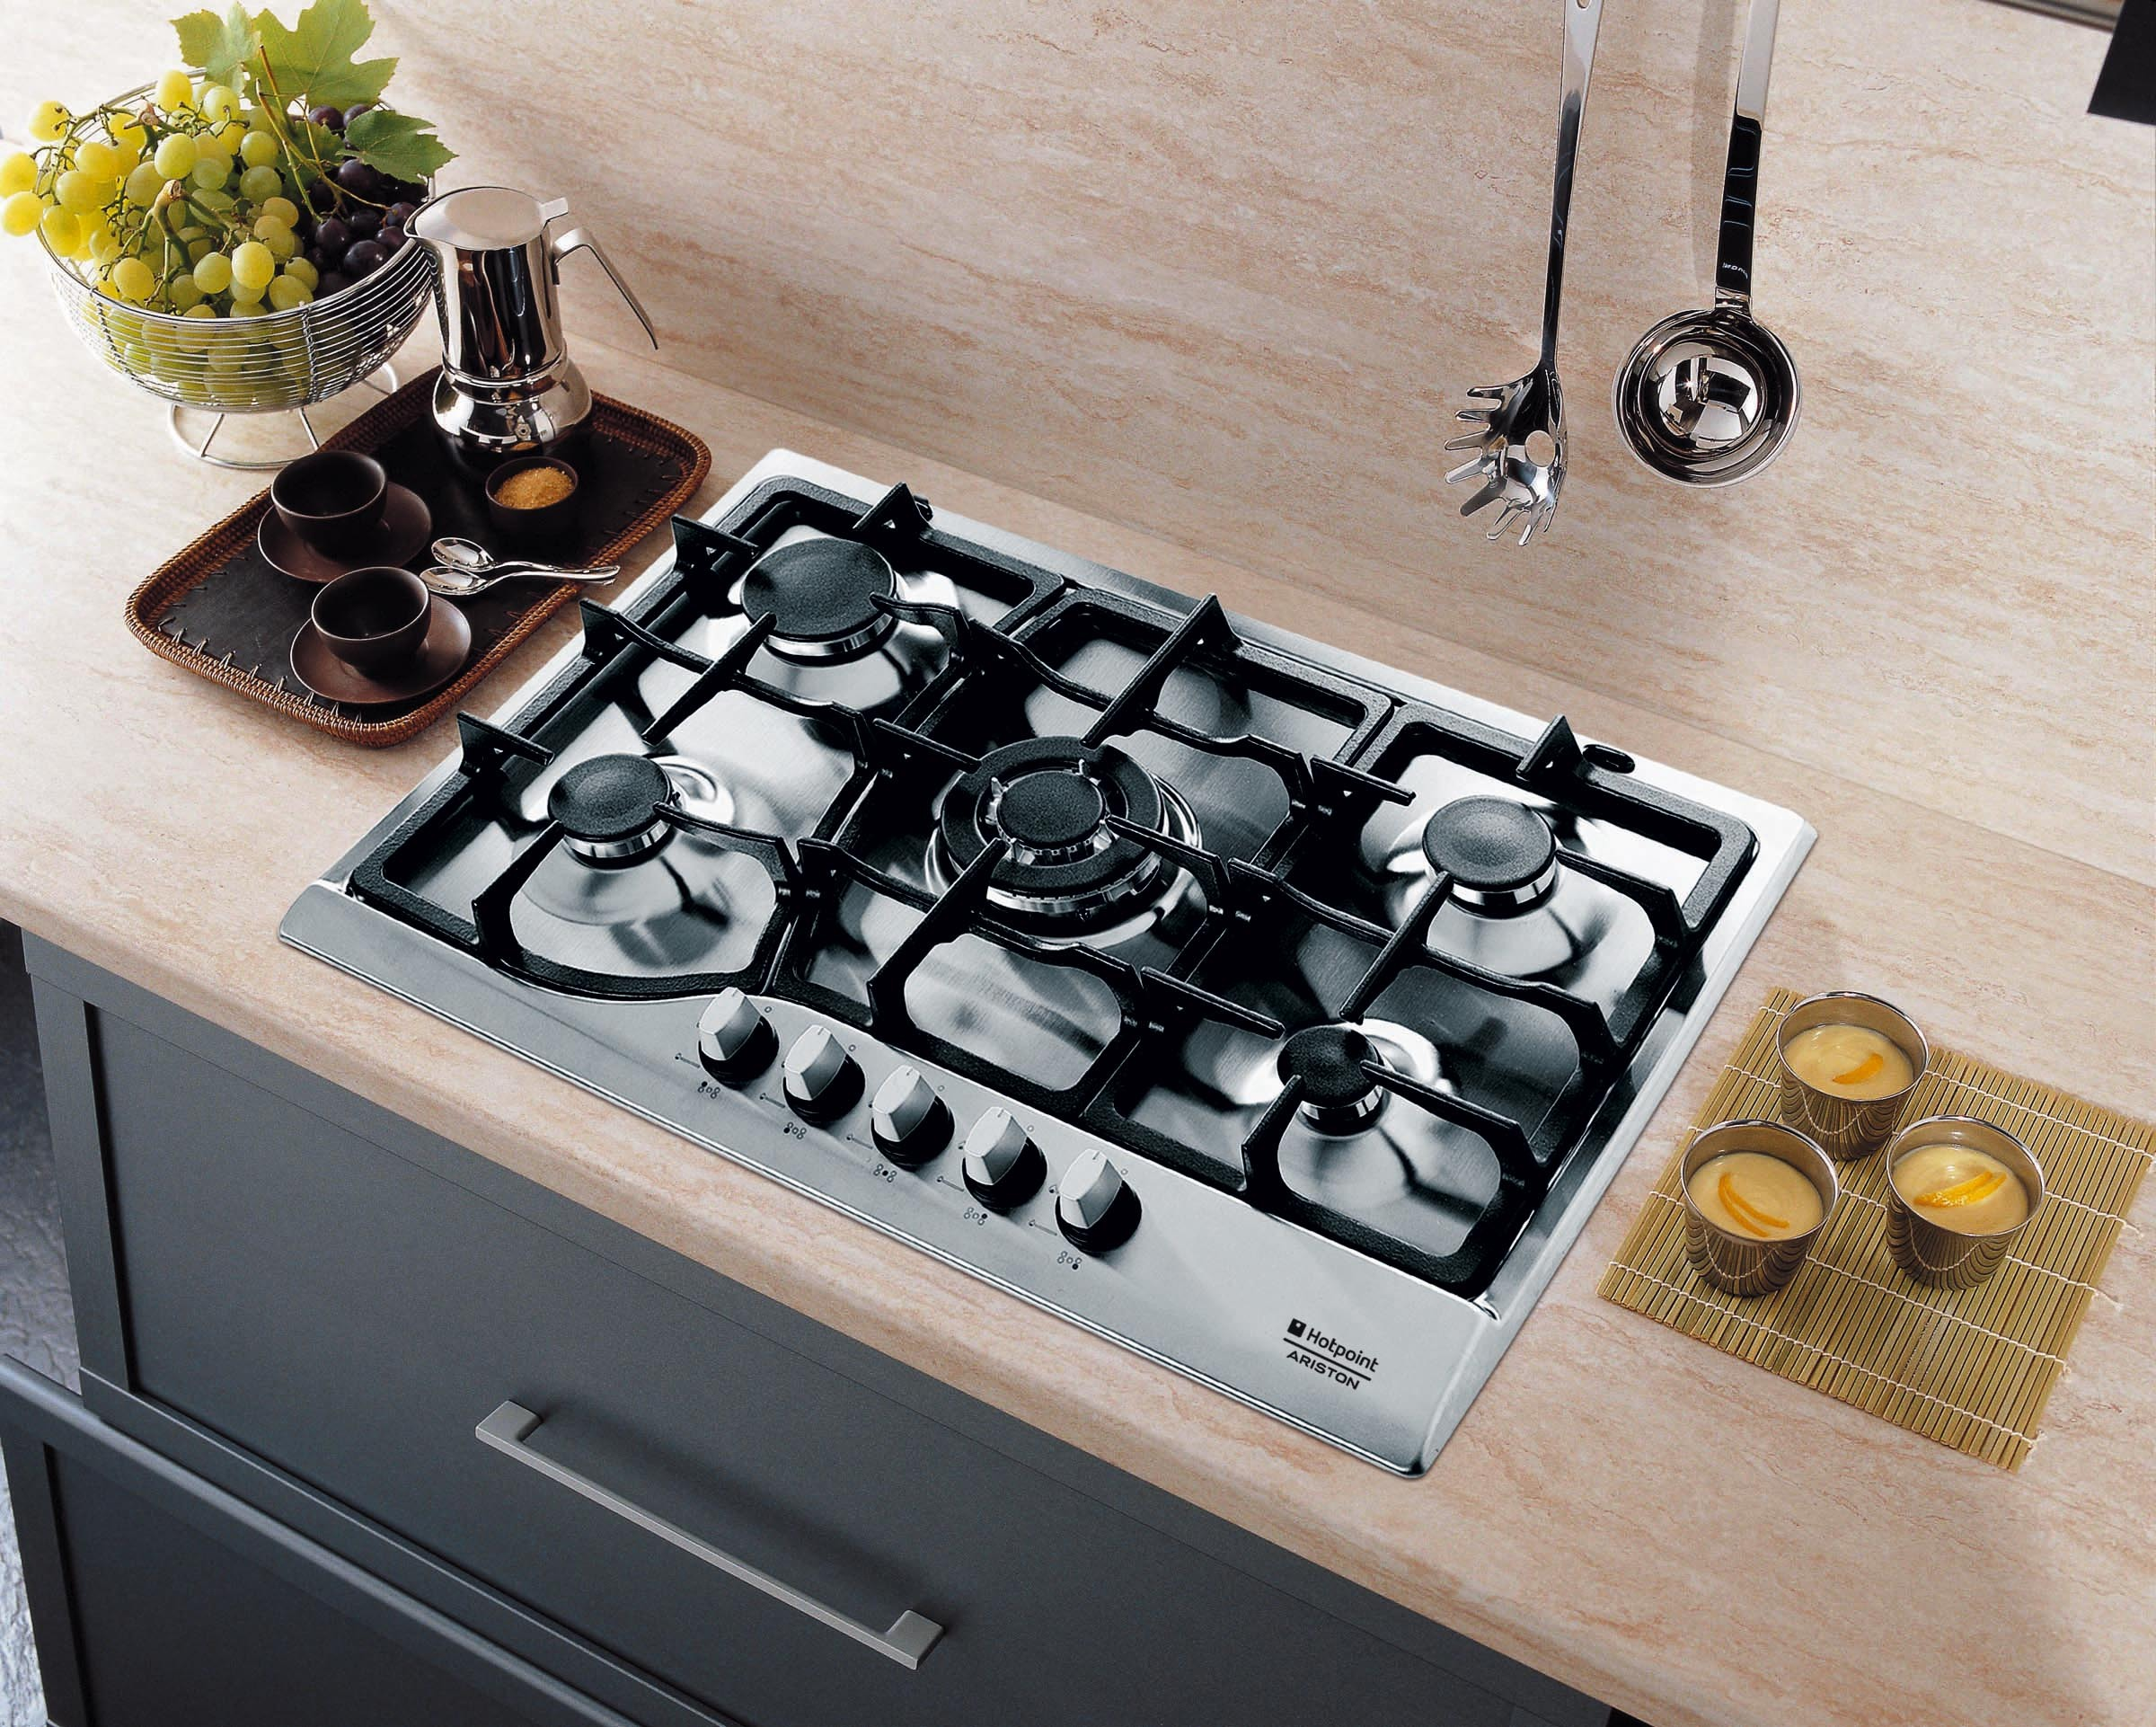 Kitchen Gas Hob ~ The hotpoint newstyle collection of kitchen appliances